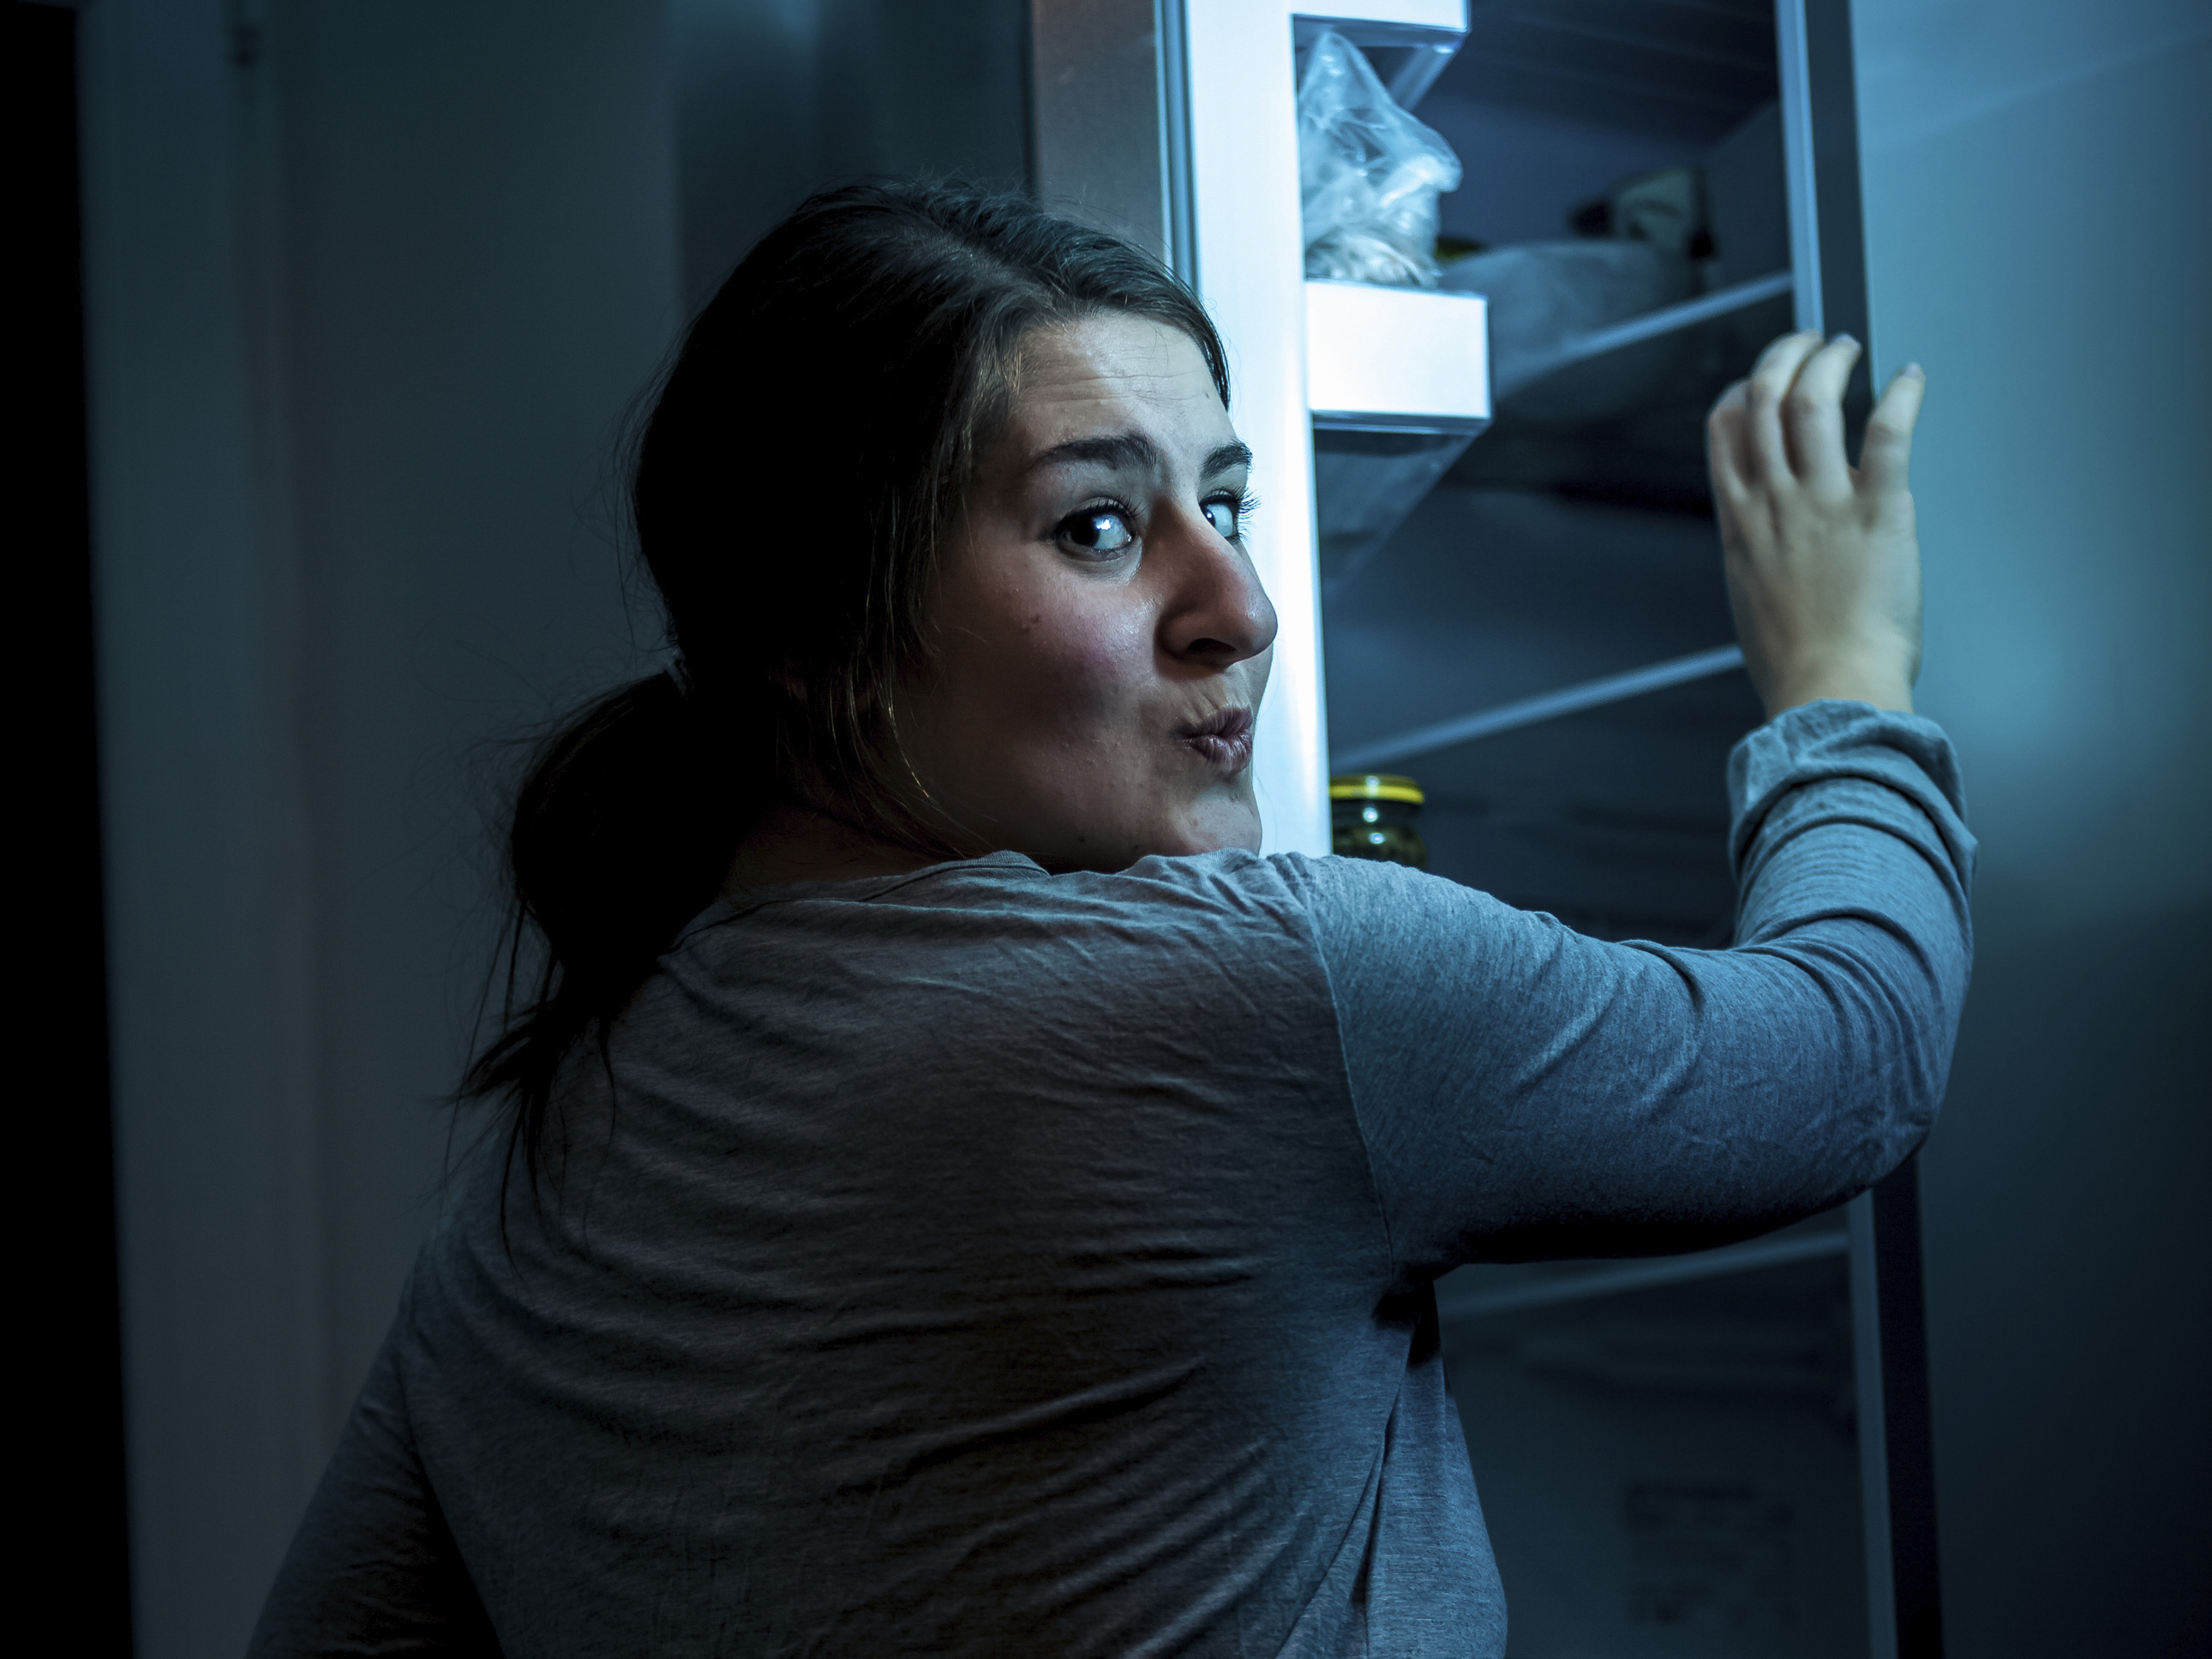 How to keep late night snacking under control